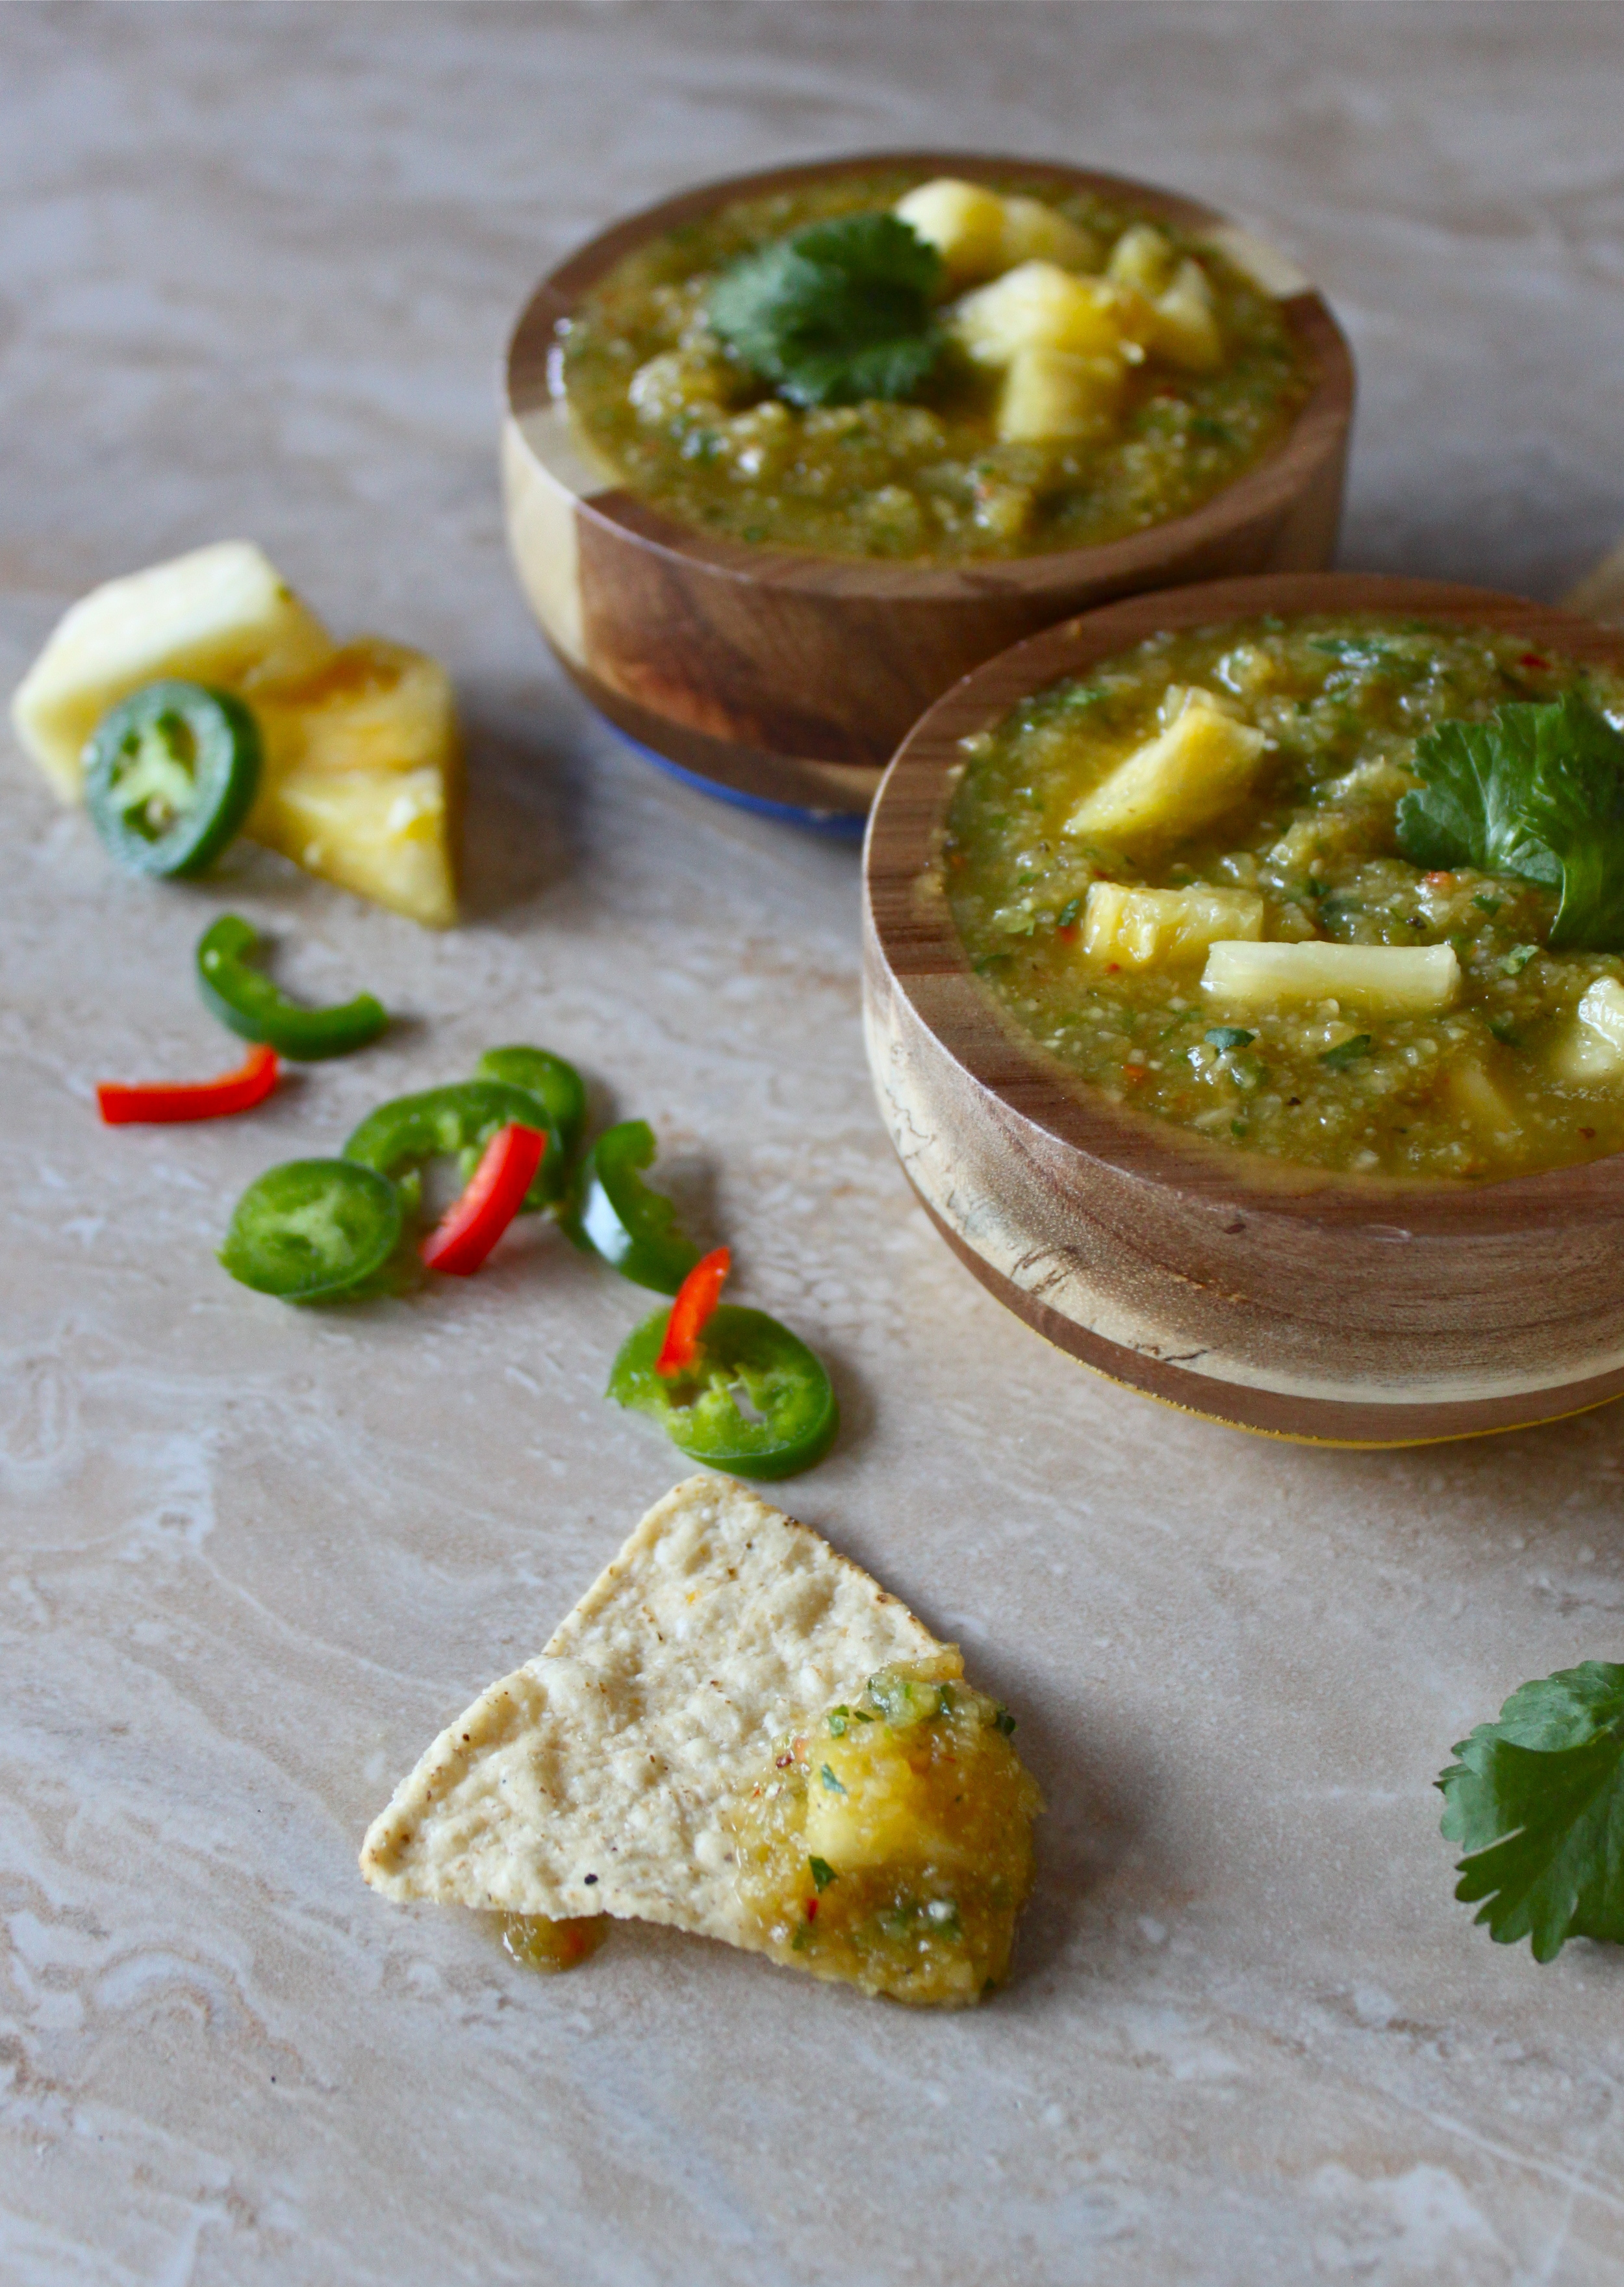 spicy pineapple & roasted tomatillo salsa_14.jpg